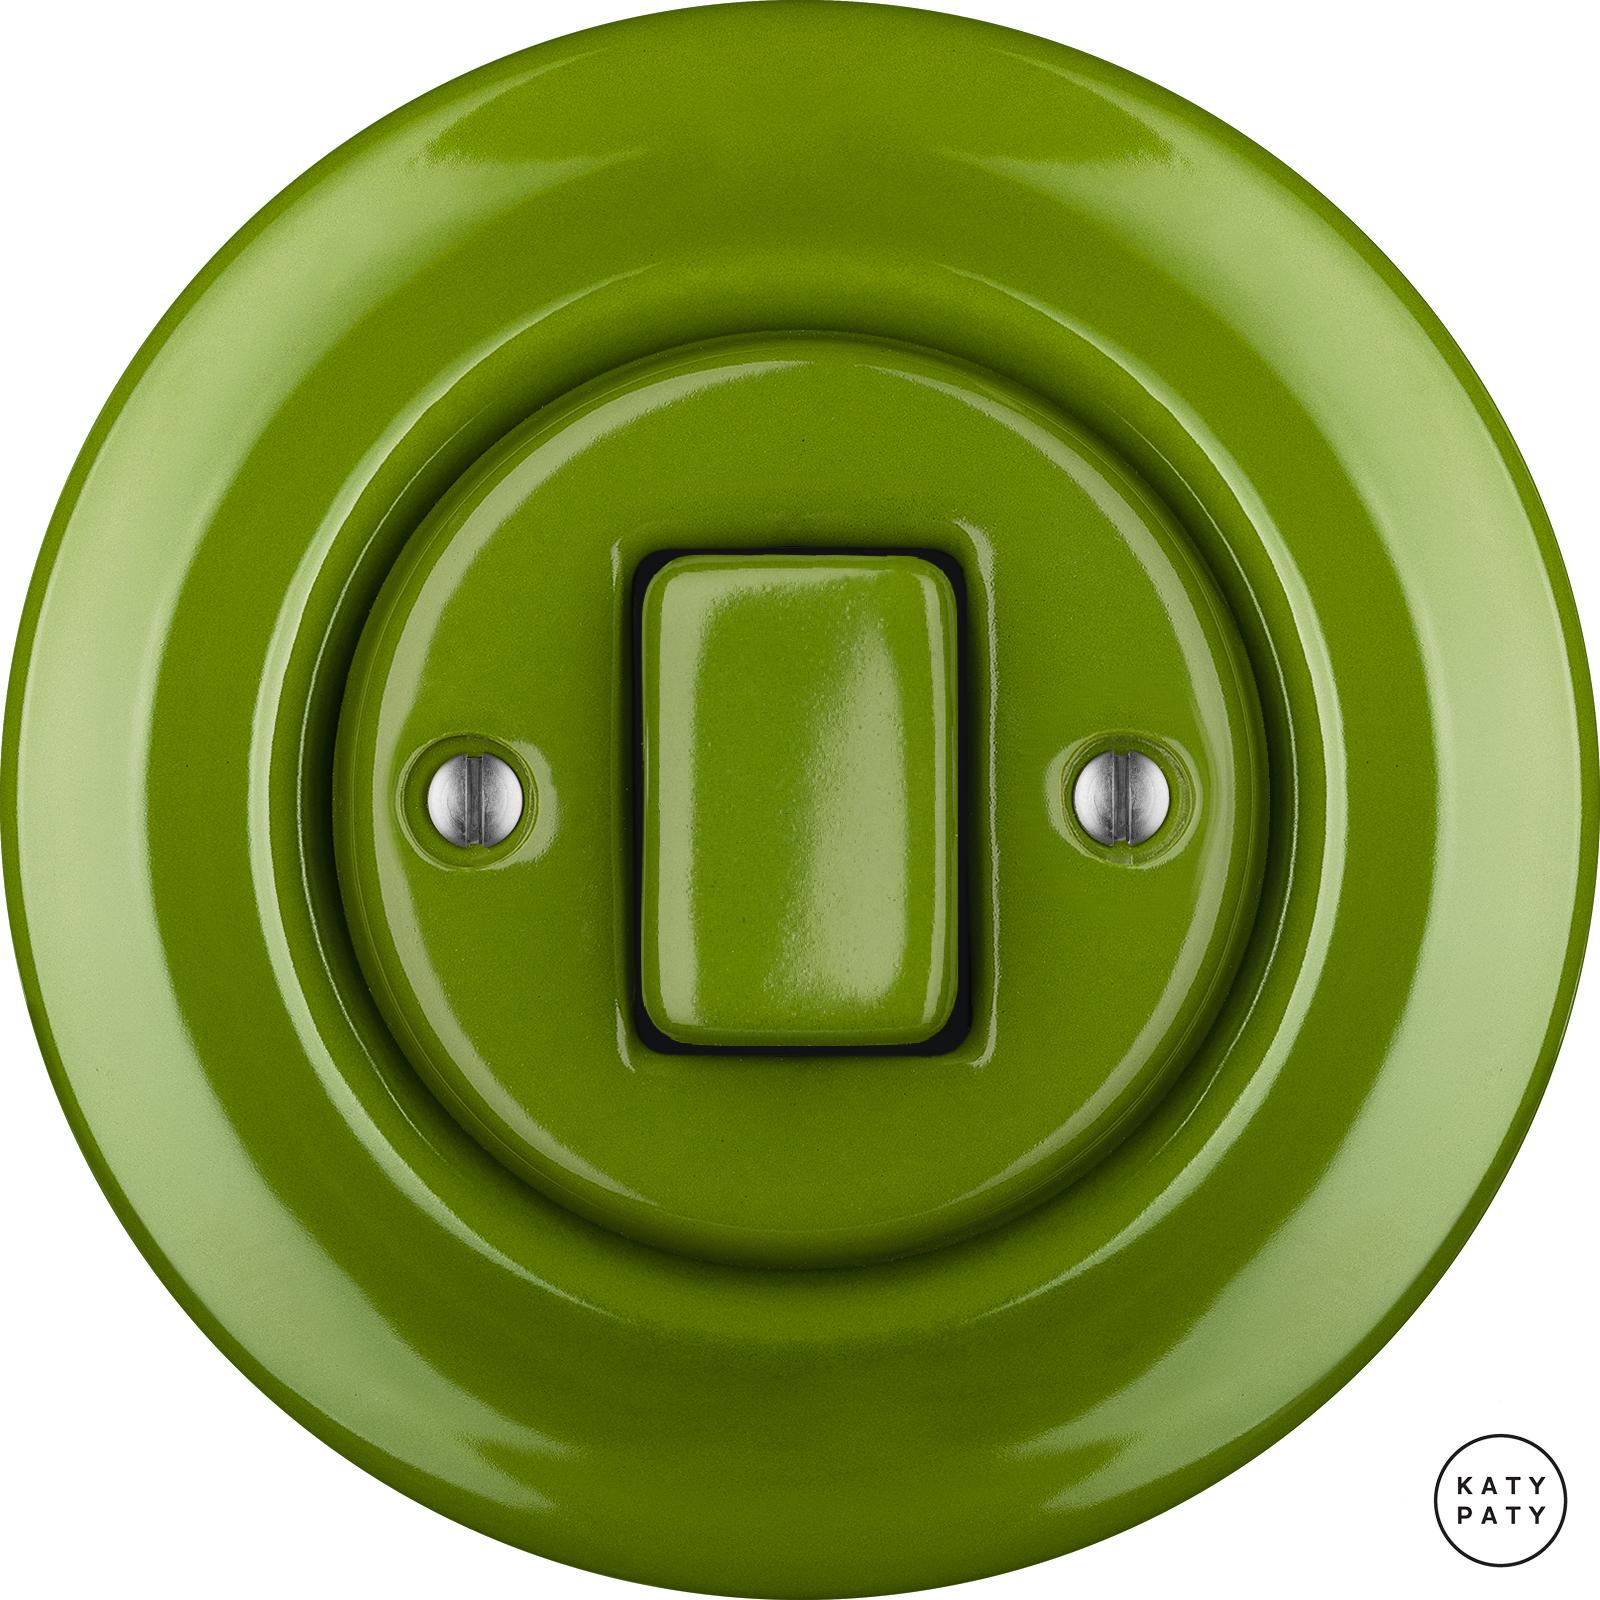 Porcelain switches - 1 gang - FAT ()  - NITOR CHLORA | Katy Paty